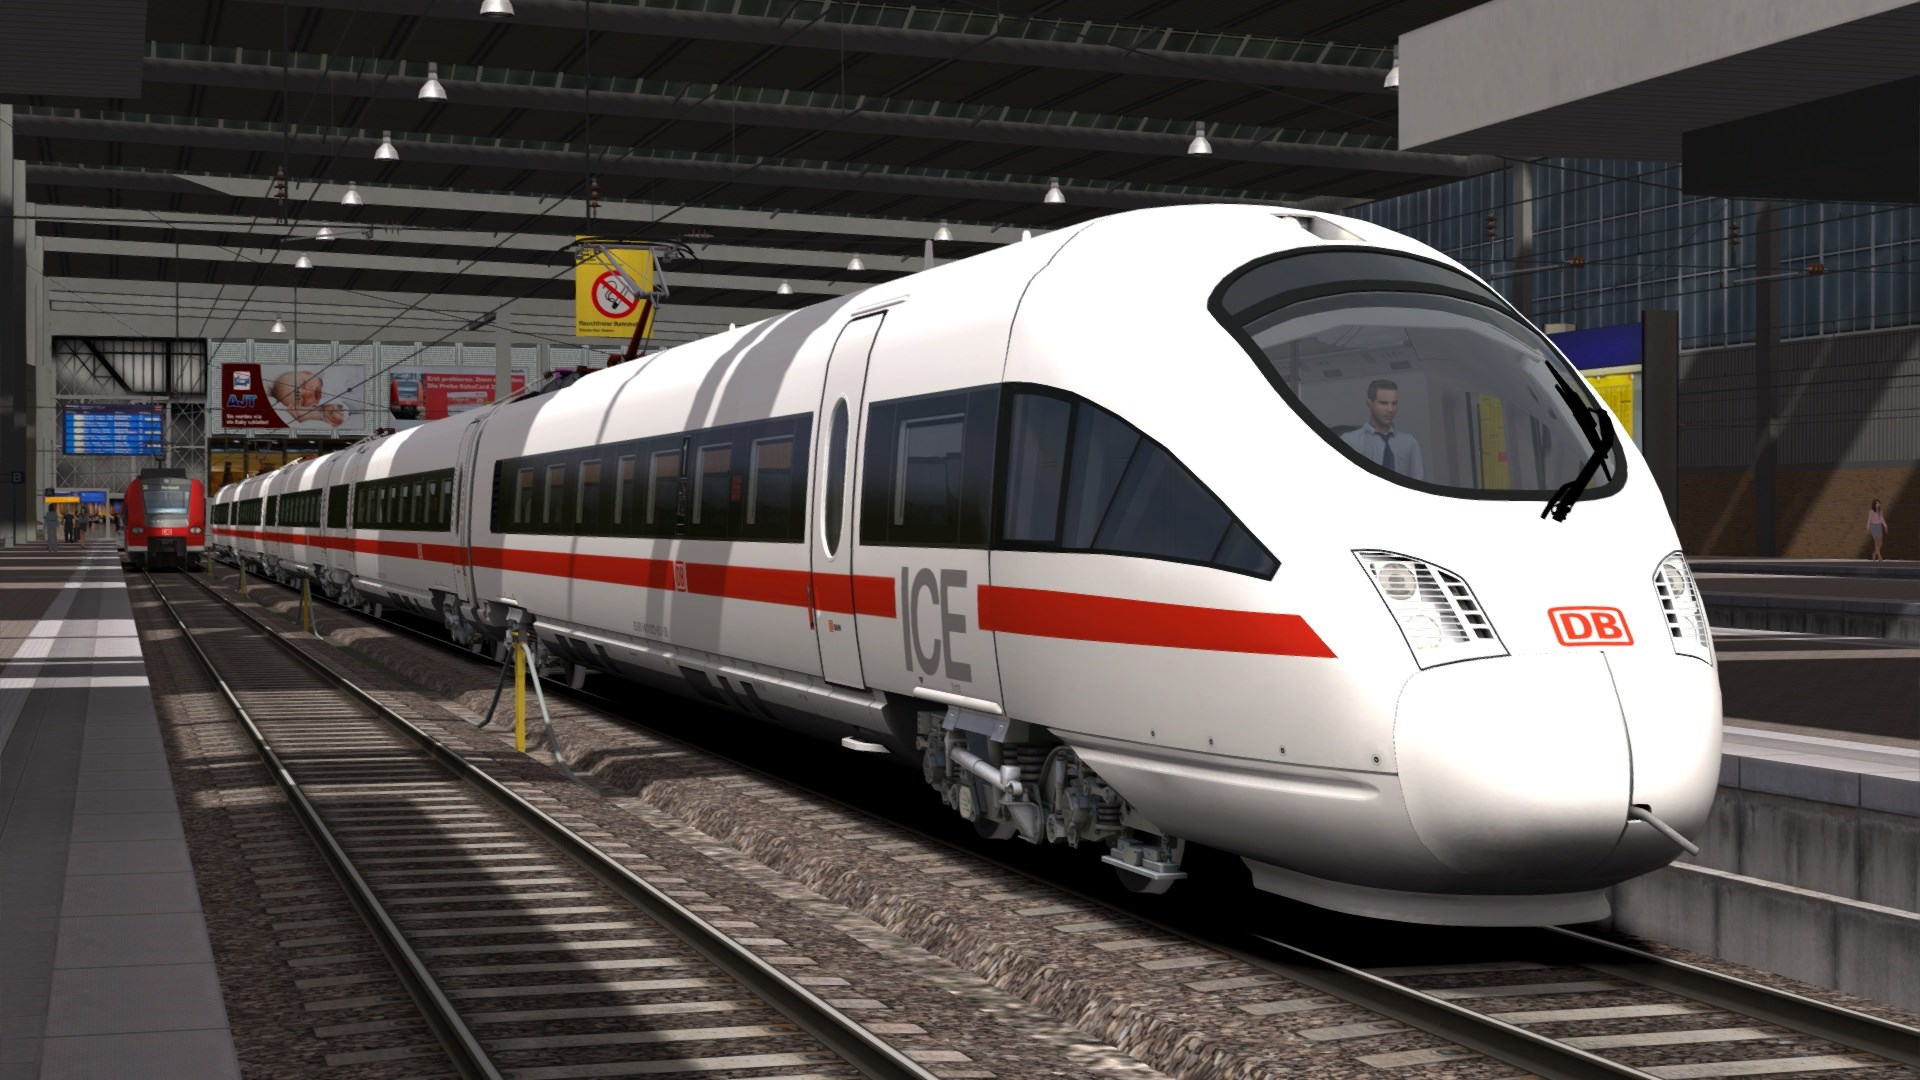 Vista exterior del ICE T de la Deutsche Bahn en Train Simulator 2015. Imagen © Dovetail Games 2013.